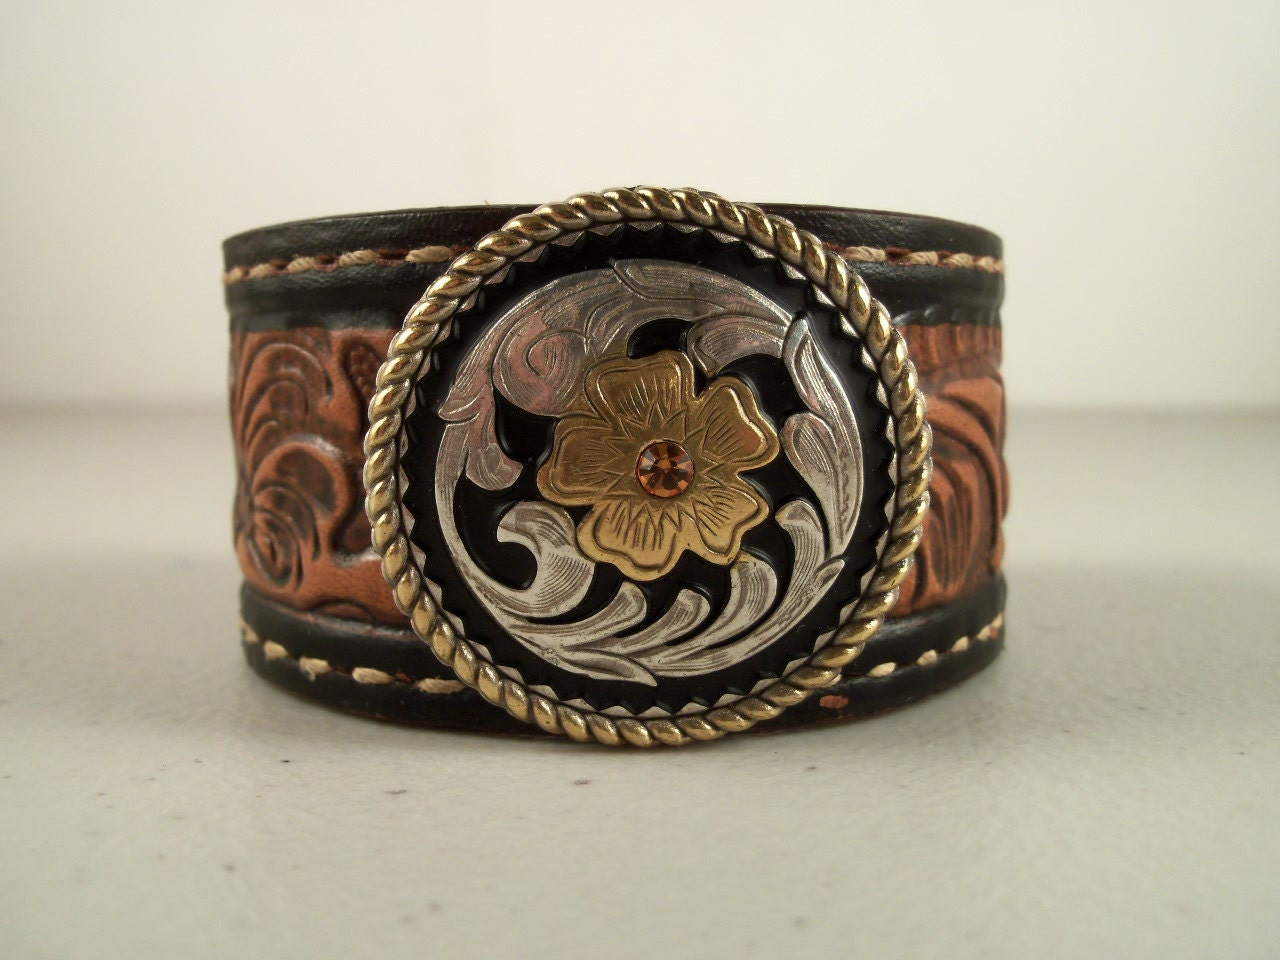 Rockabilly cowboy cuffs from repurposed cowboy belts by Repurposed leather belts